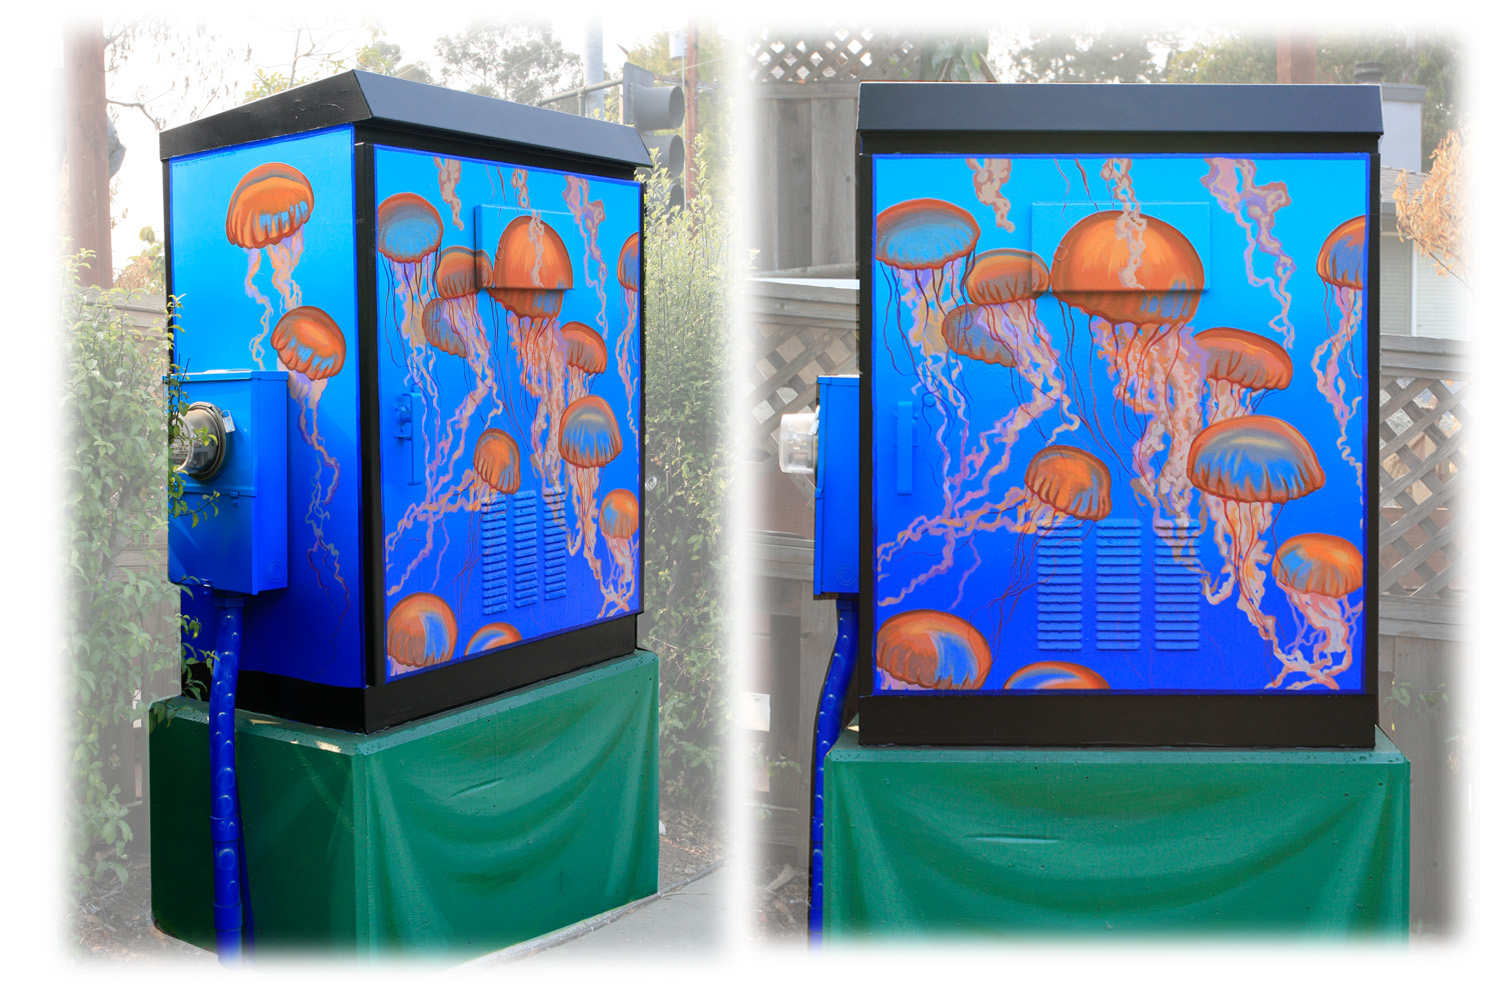 The city of Capitola, CA chose me to paint a series of sea life murals on traffic signal boxes. This was my first. At Capitola Rd & 30th Ave.